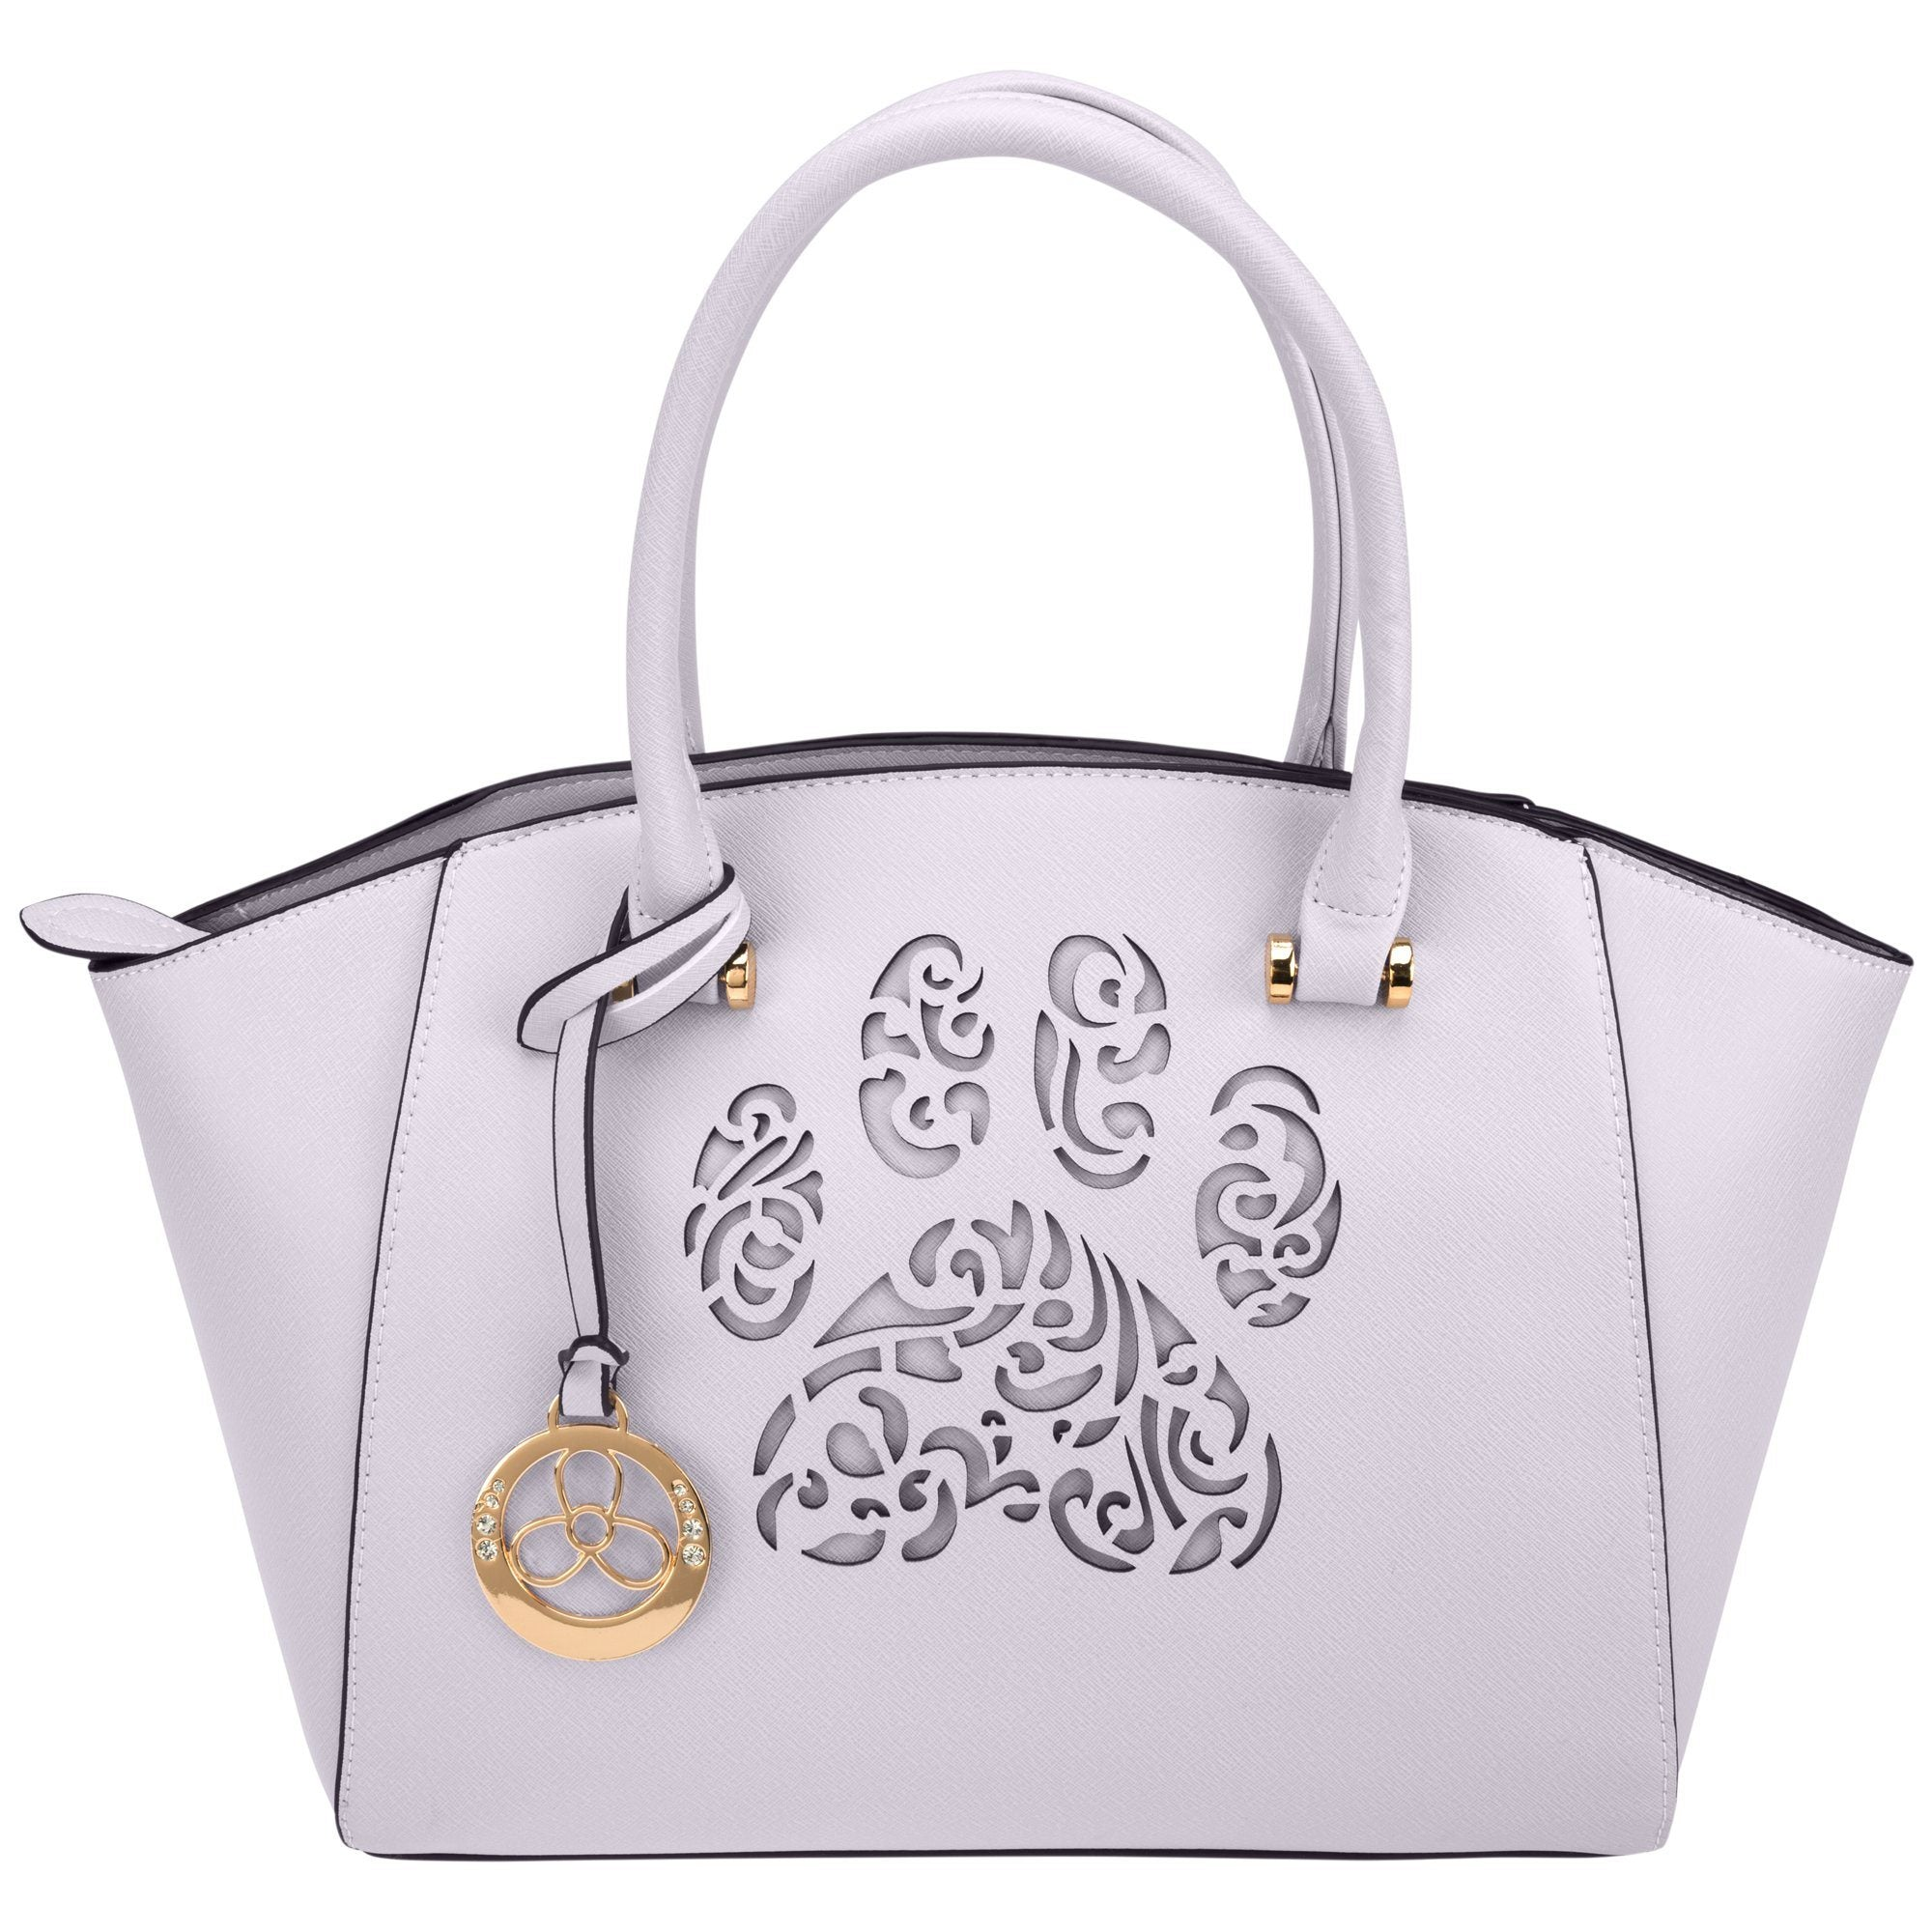 Pawsitively Beautiful Handbag Pawsitively Beautiful Handbag Pawsitively  Beautiful Handbag Pawsitively Beautiful Handbag ... 079692a68b53c